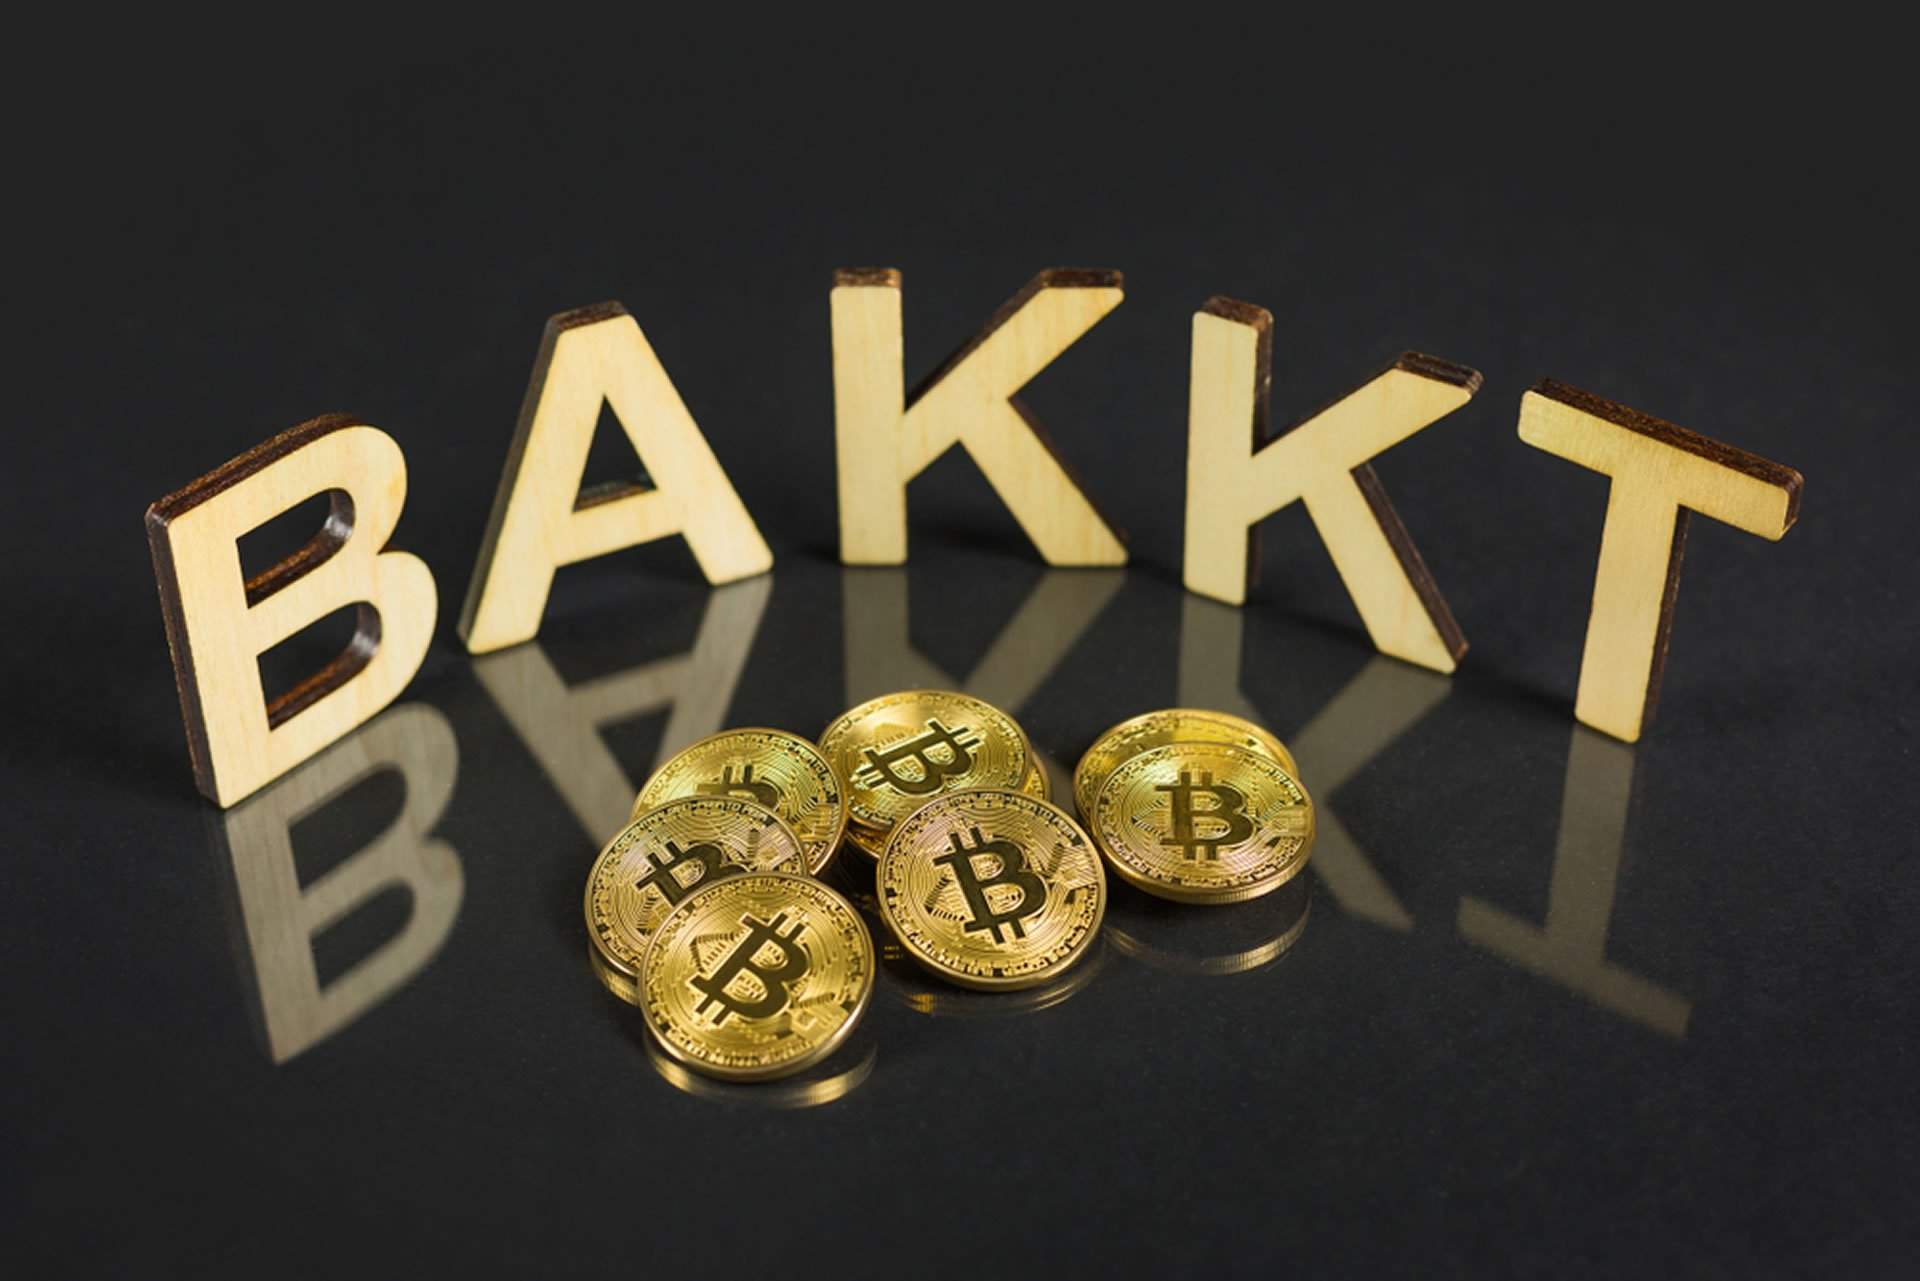 Bakkt Goes Live With First Trades But Bitcoin Fails to Hold $10,000